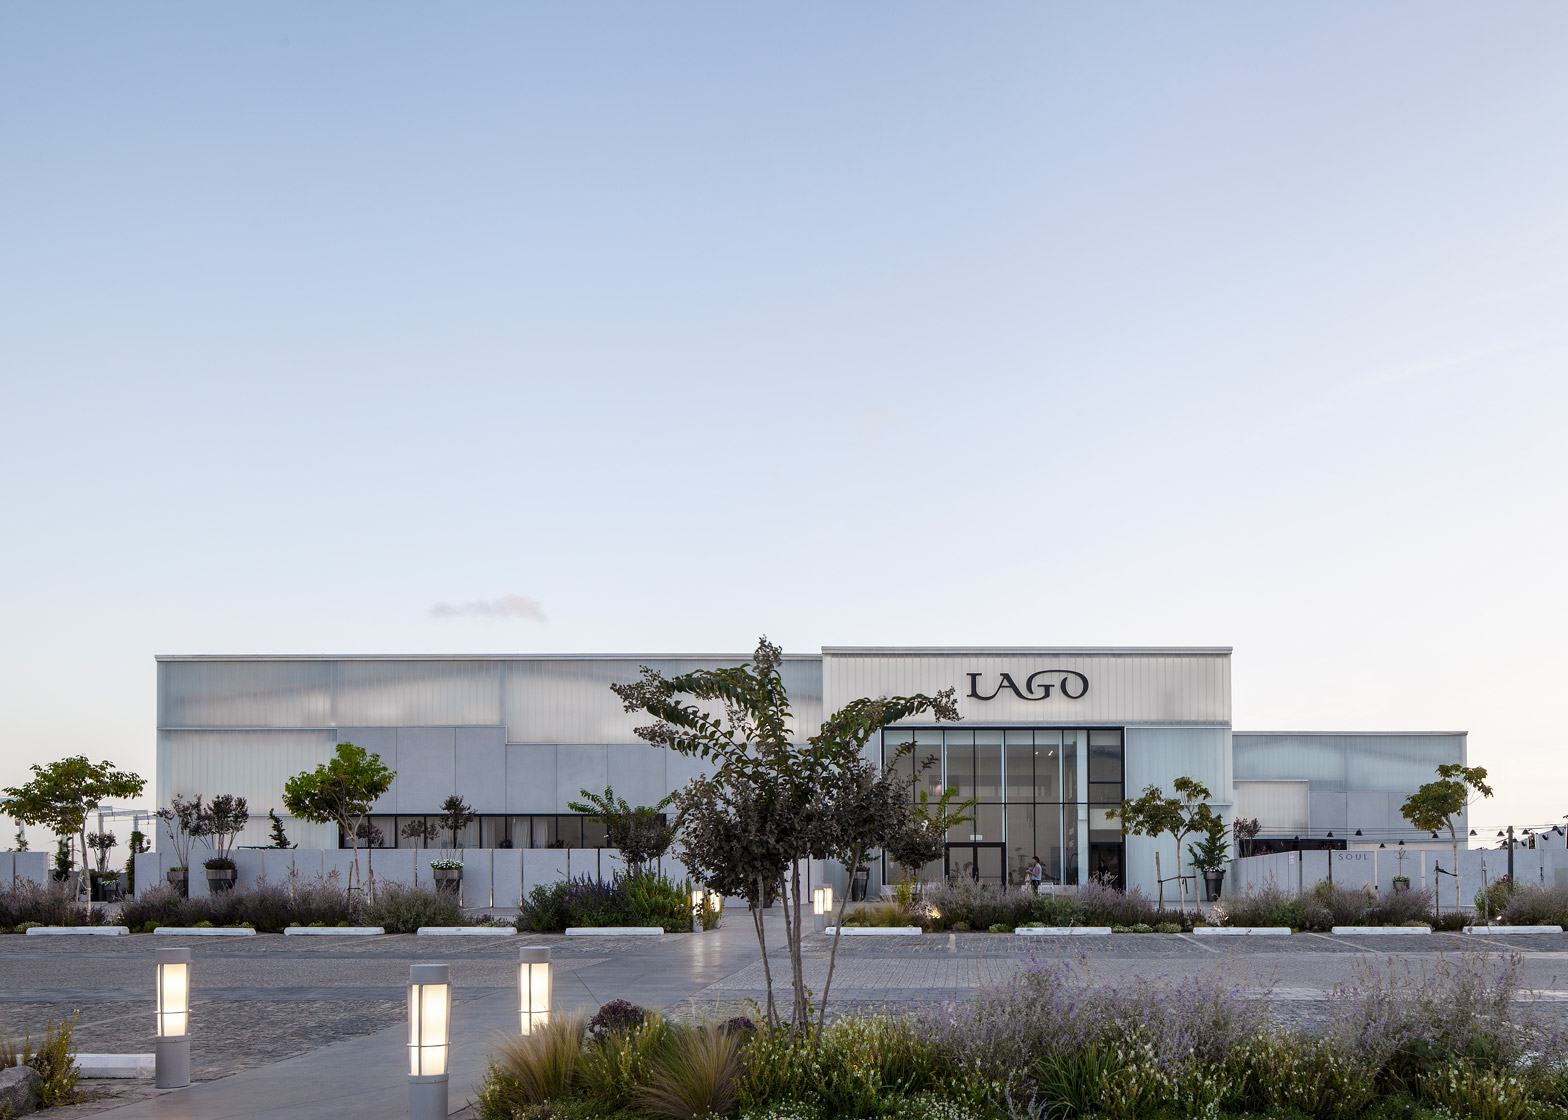 Lago event hall by Pitsou Kedem in Rishon LeZion, Israel